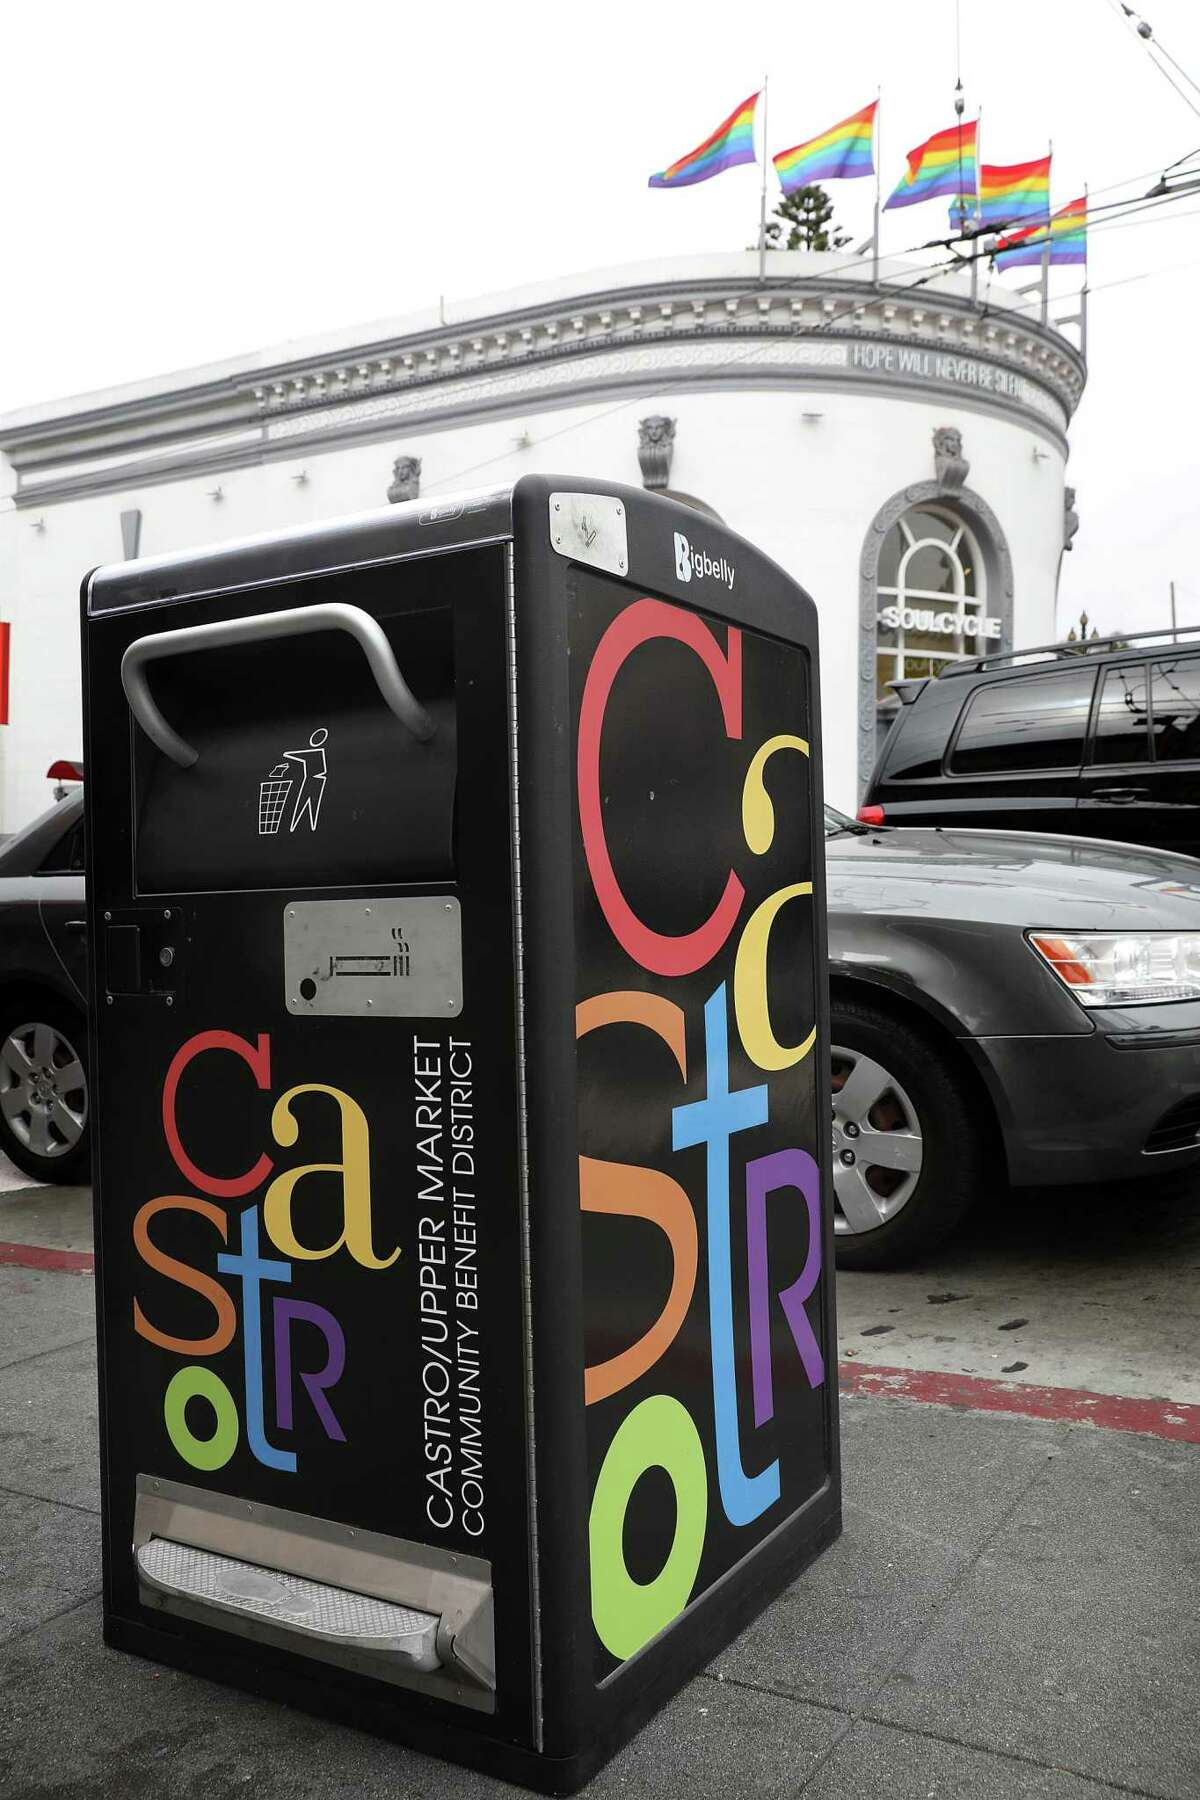 View of the new Bigbelly garbage can seen on Castro Street on Monday, Aug. 13, 2018 in San Francisco, Calif.